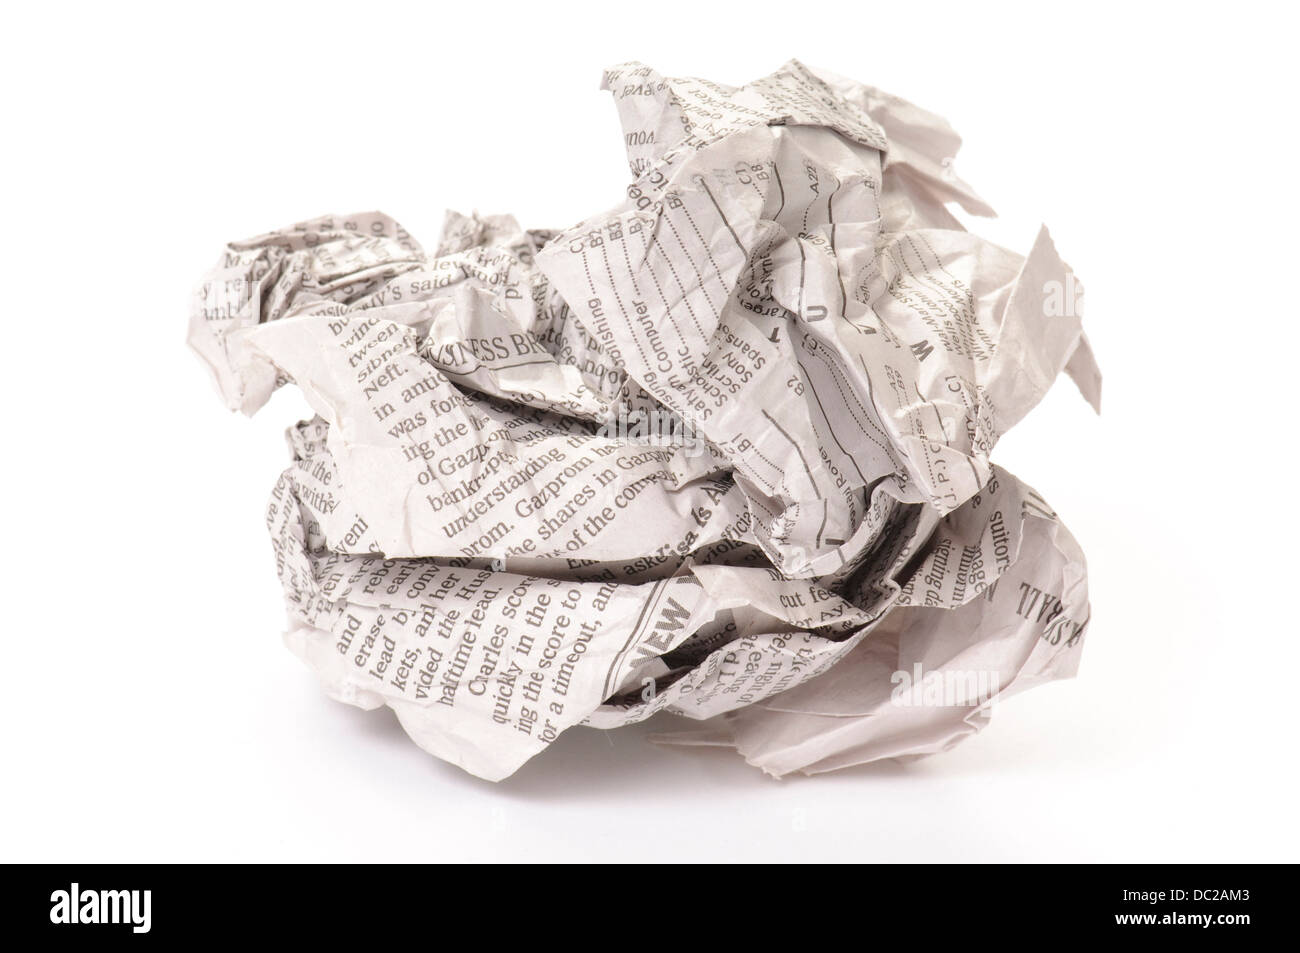 Studio portrait of crumpled up newspaper on white background. - Stock Image